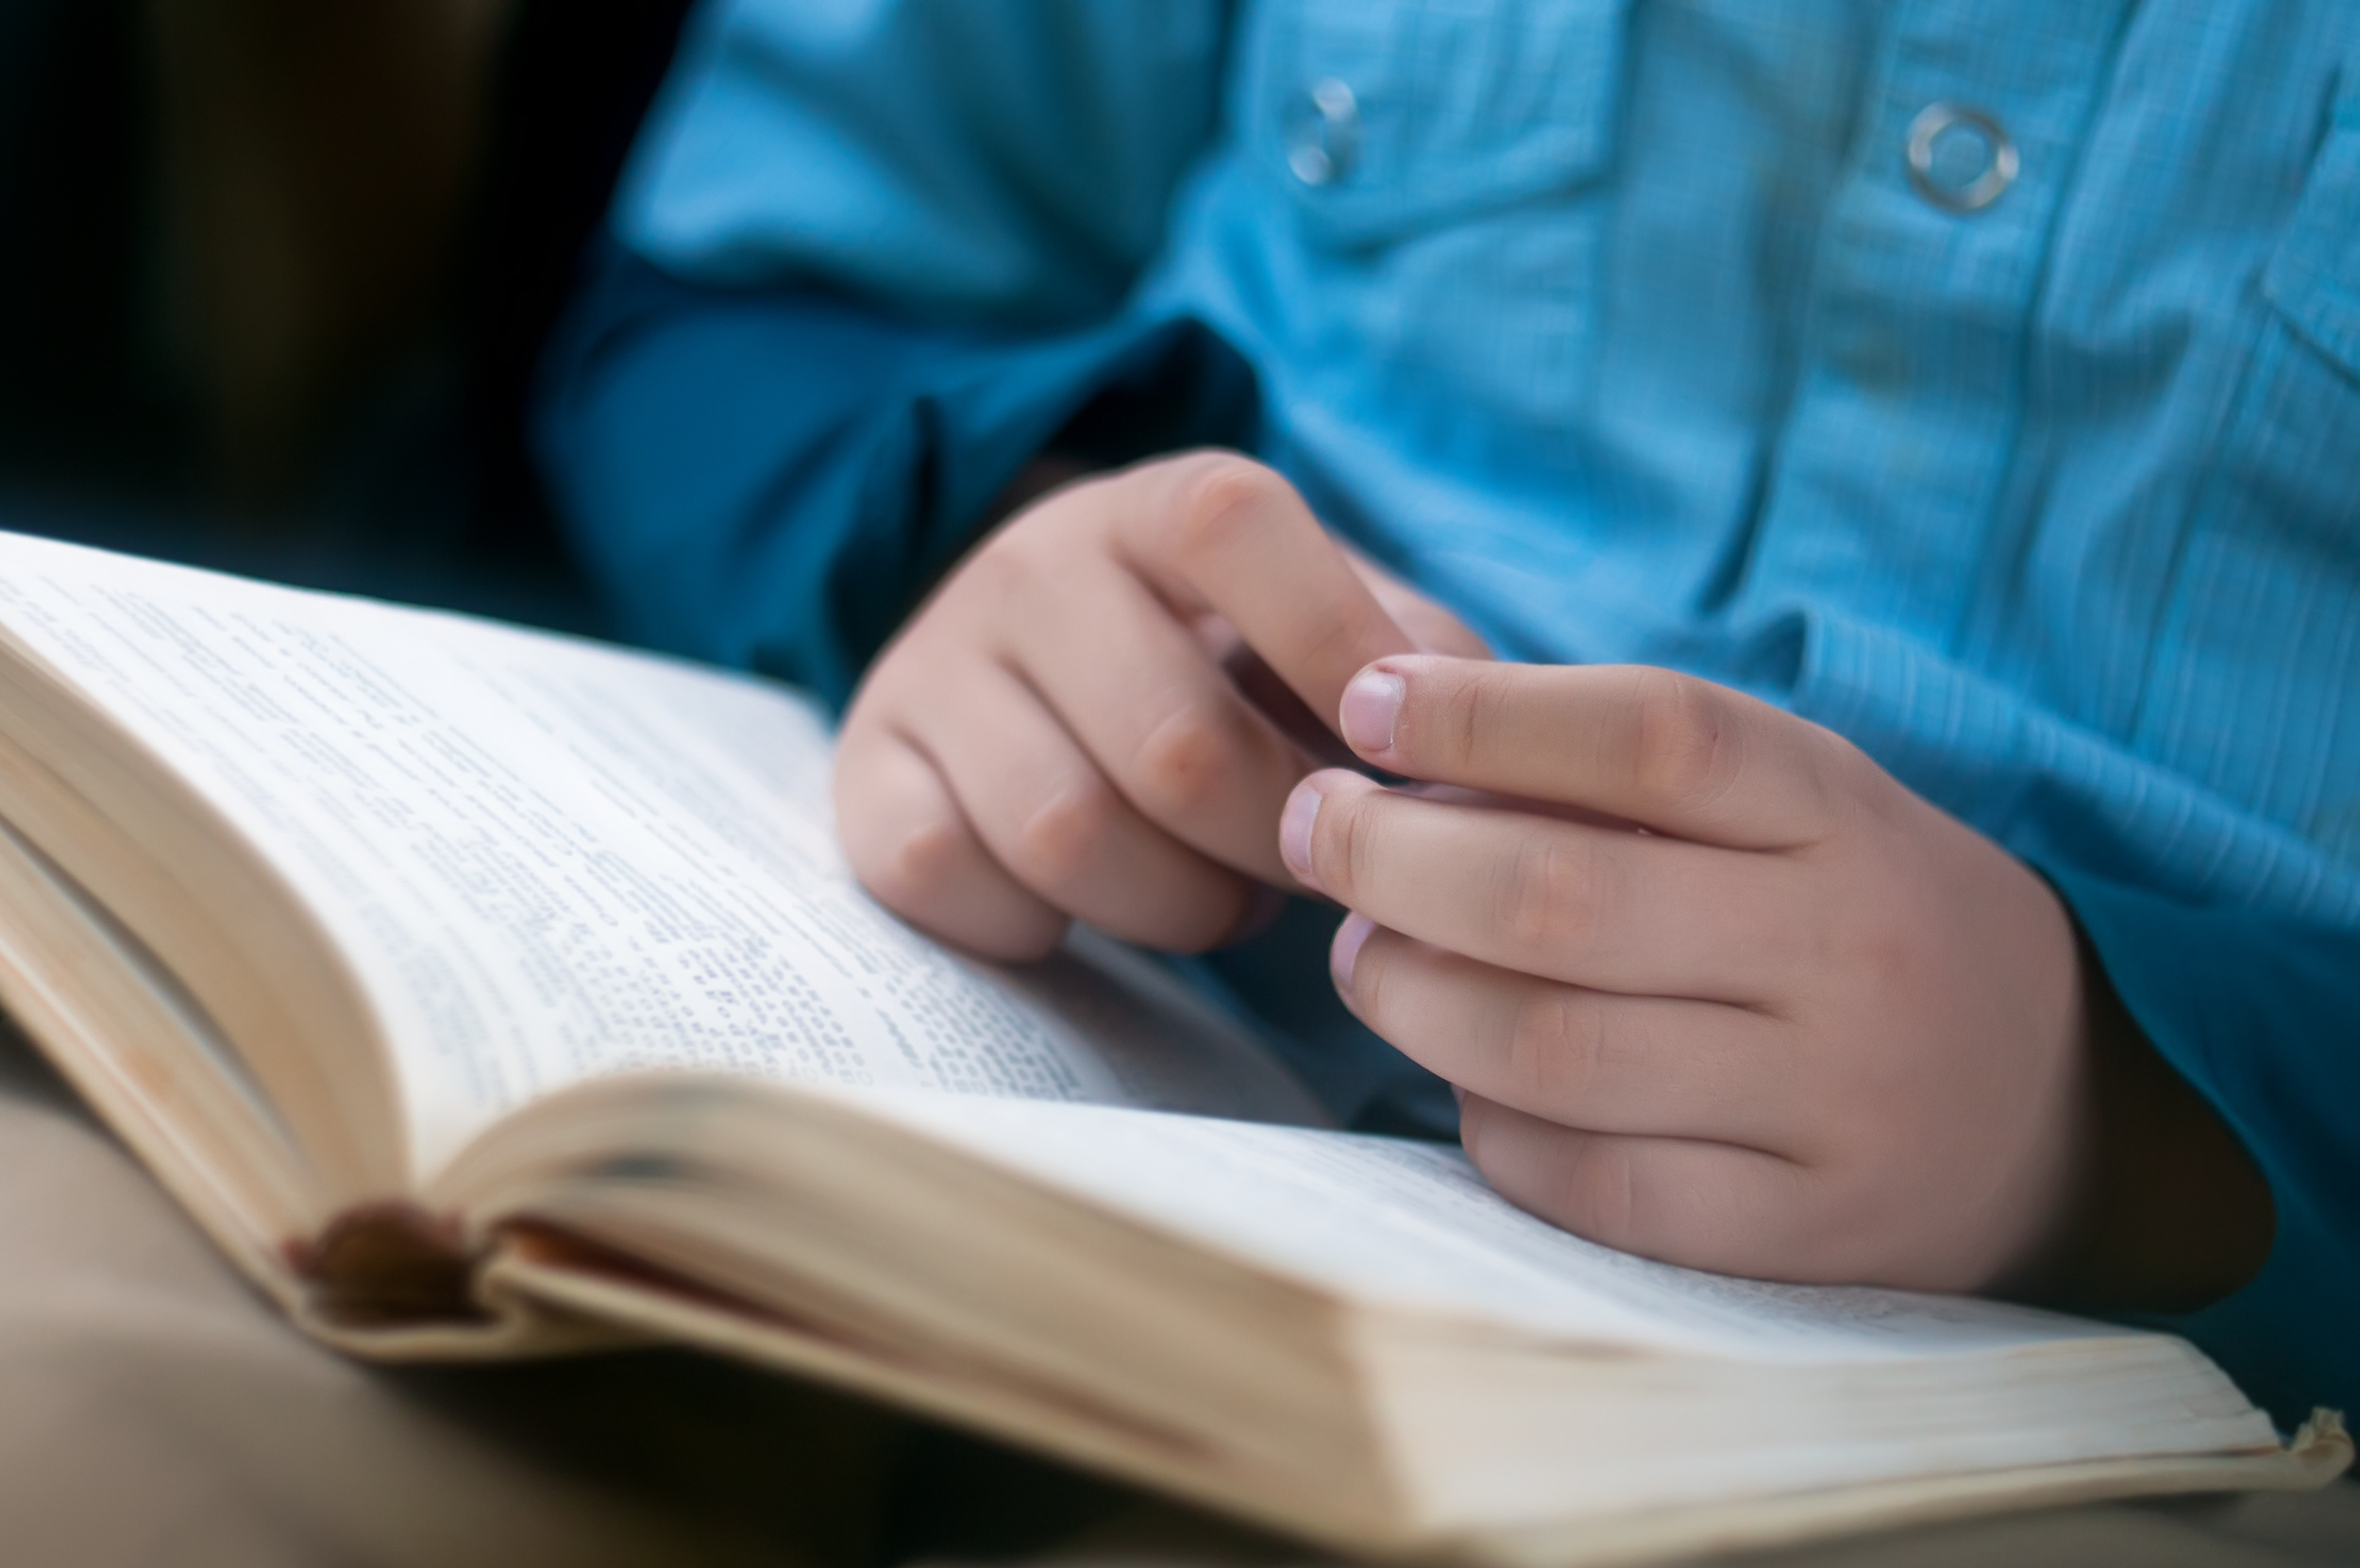 Child hands are on the open book (Yuliya Evstratenko/Shutterstock)